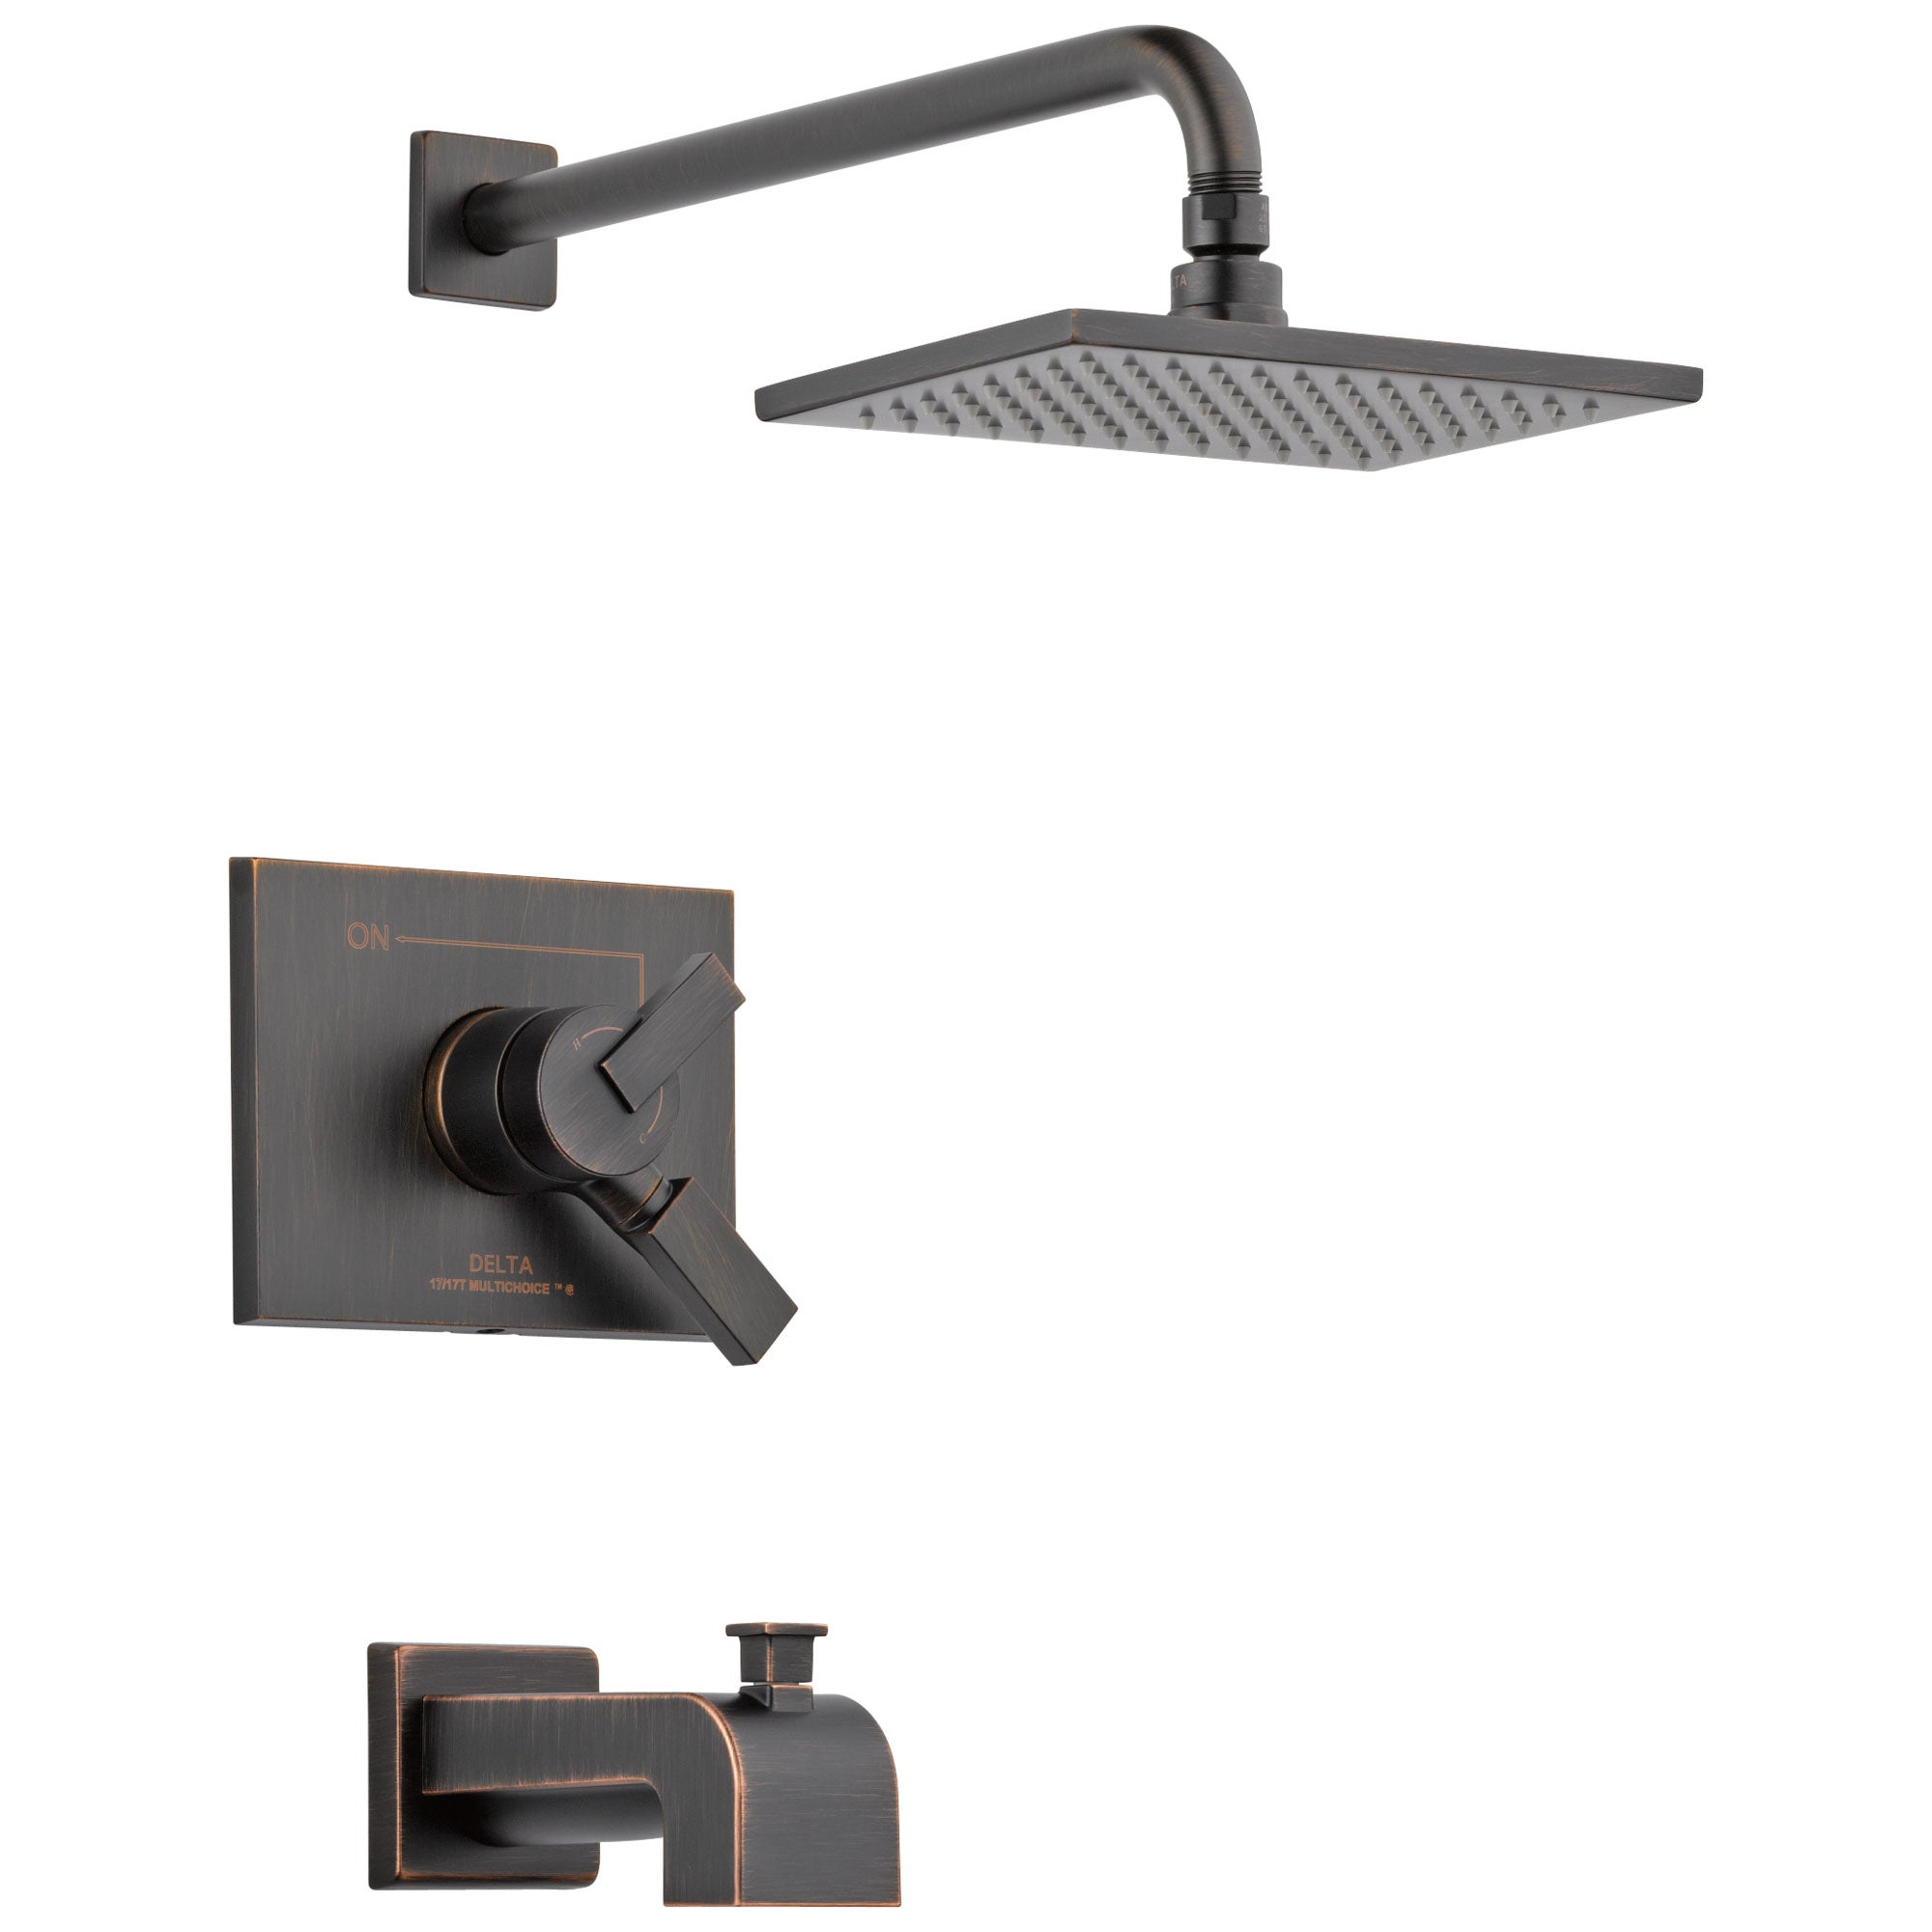 Delta Vero Venetian Bronze Finish Monitor 17 Series Water Efficient Tub & Shower Combo Faucet Trim Kit (Requires Valve) DT17453RBWE